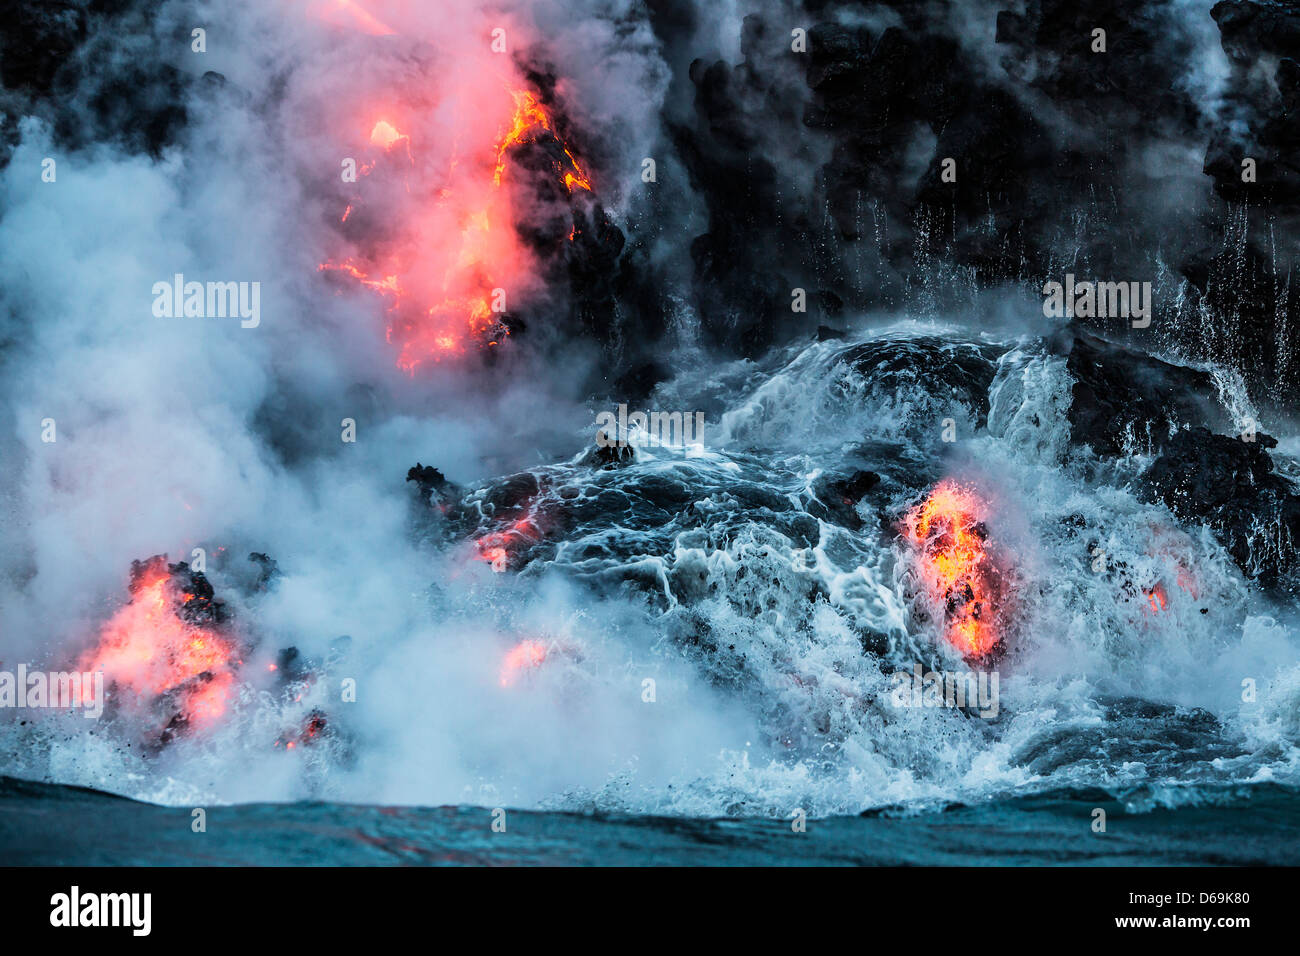 Lava flowing into water - Stock Image